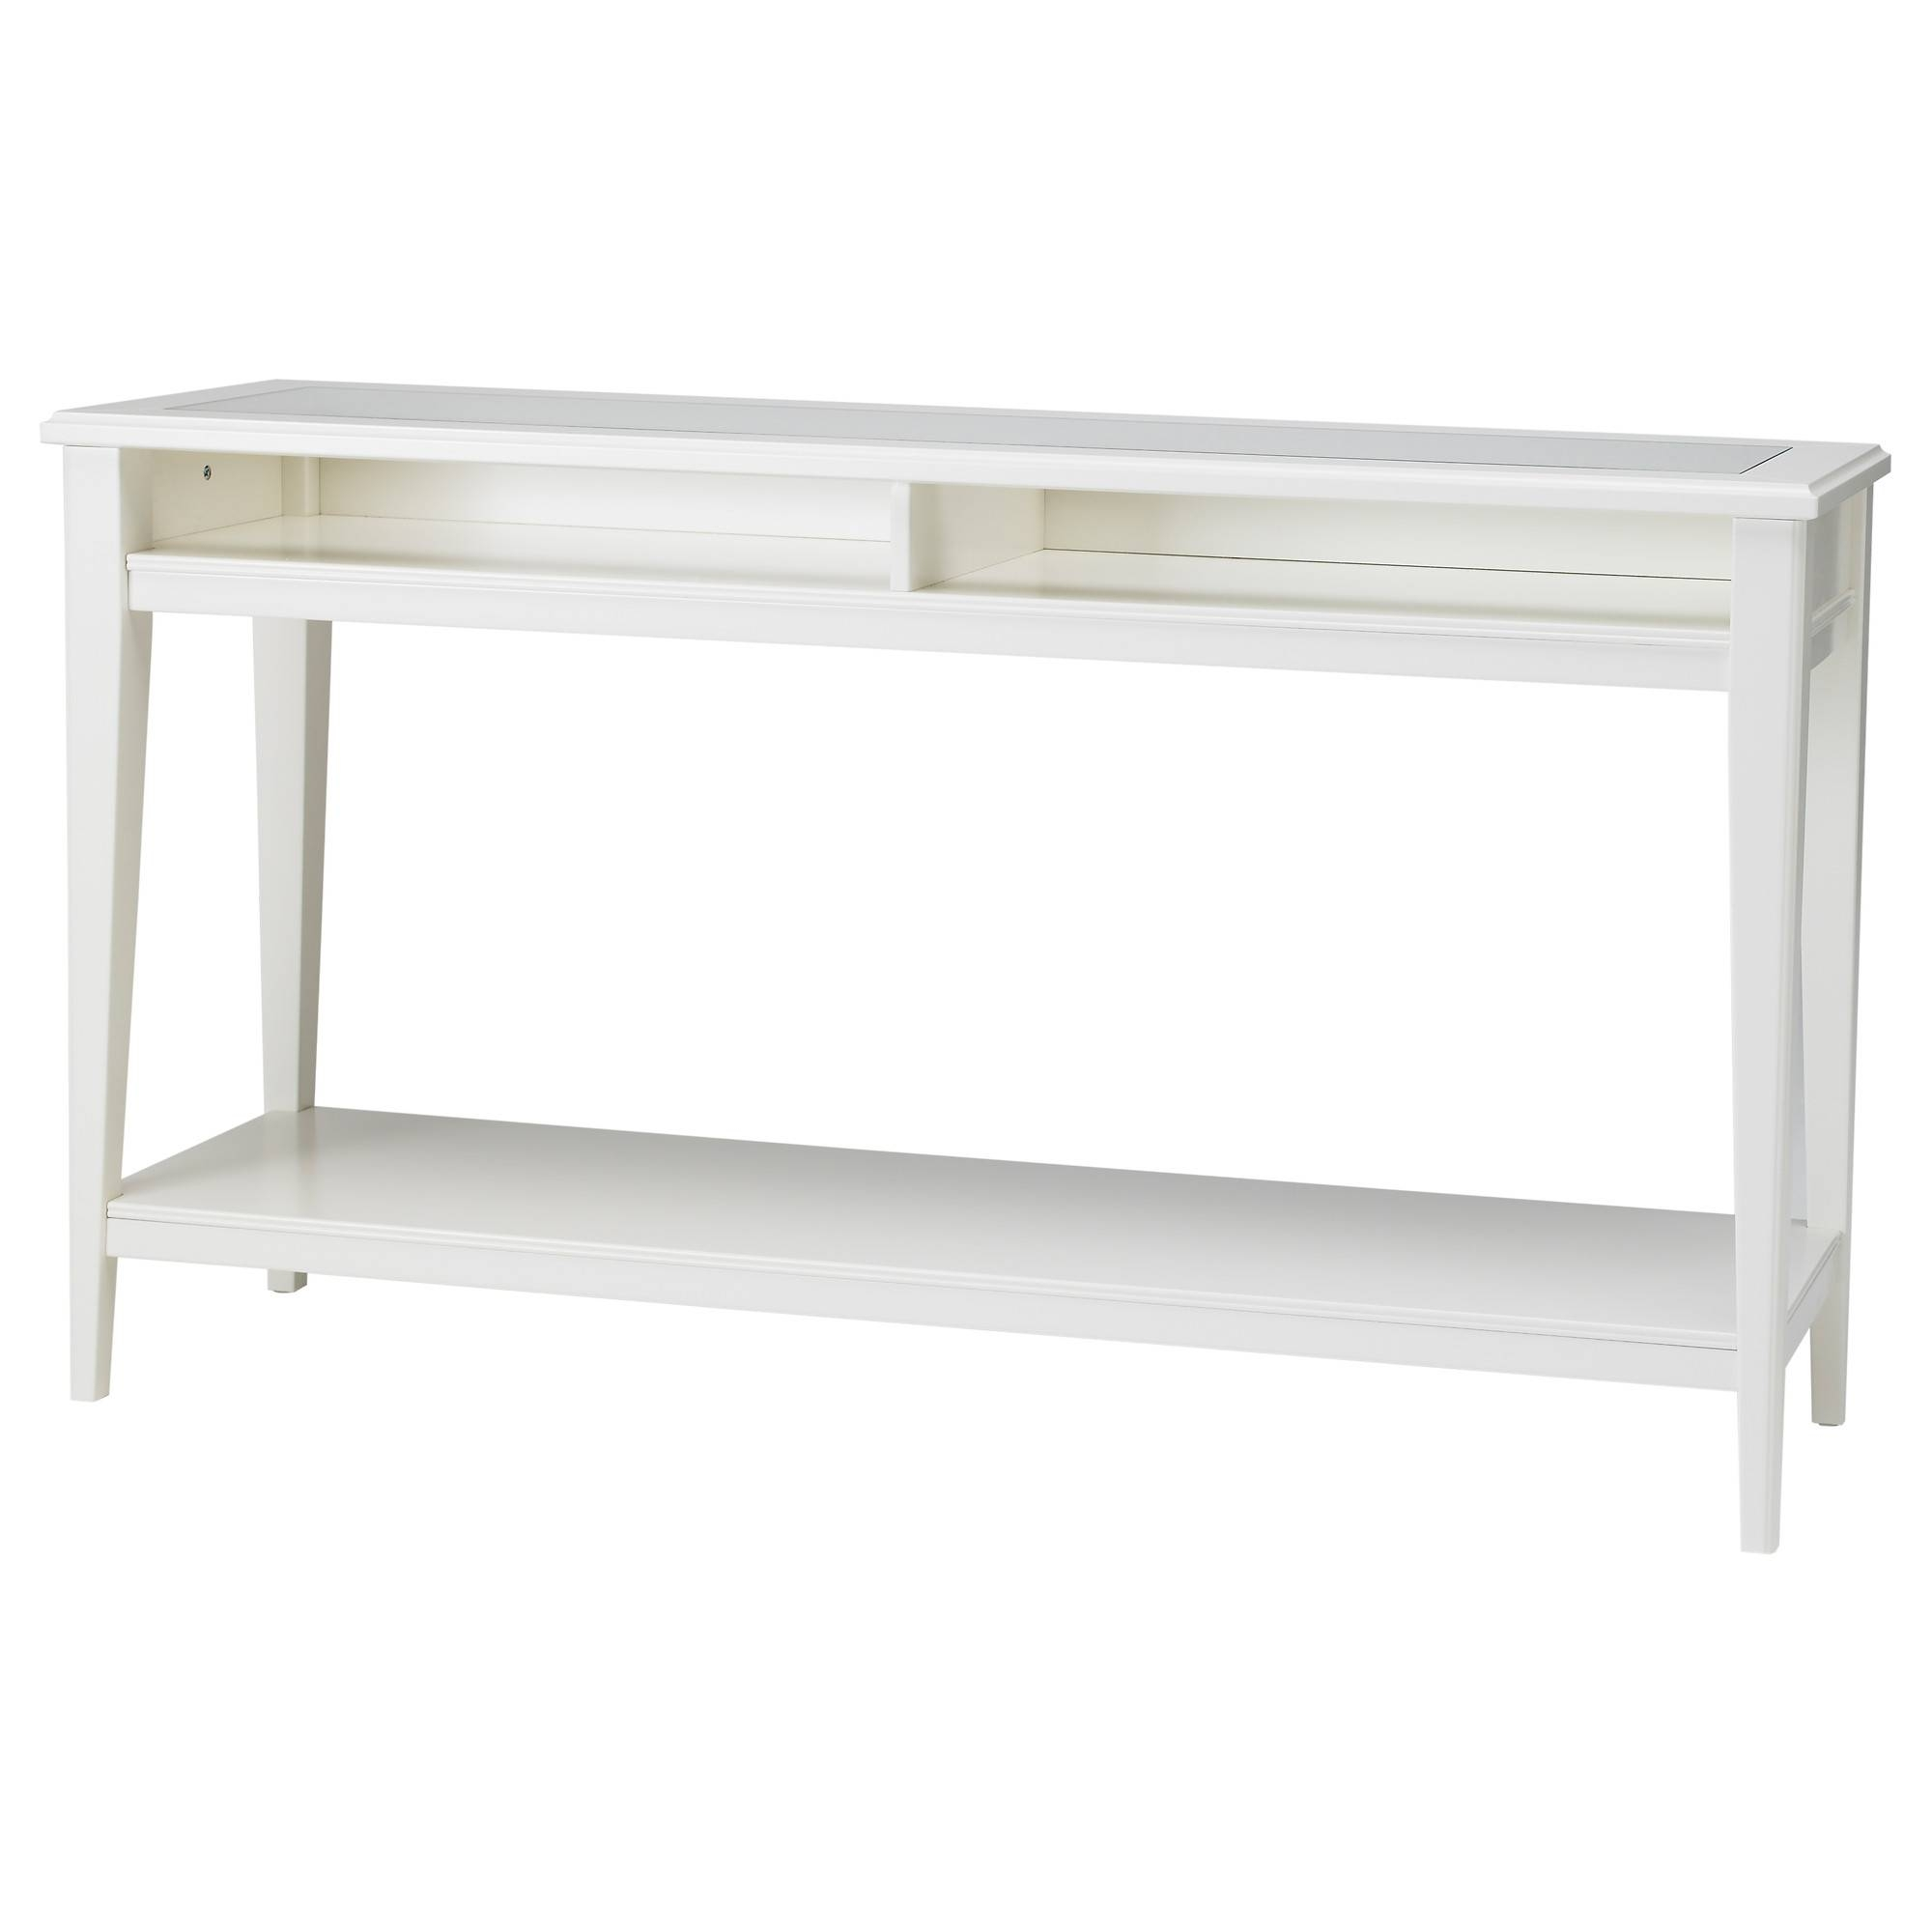 Cabinets & Console Tables - Ikea with White Sideboard Furniture (Image 7 of 30)